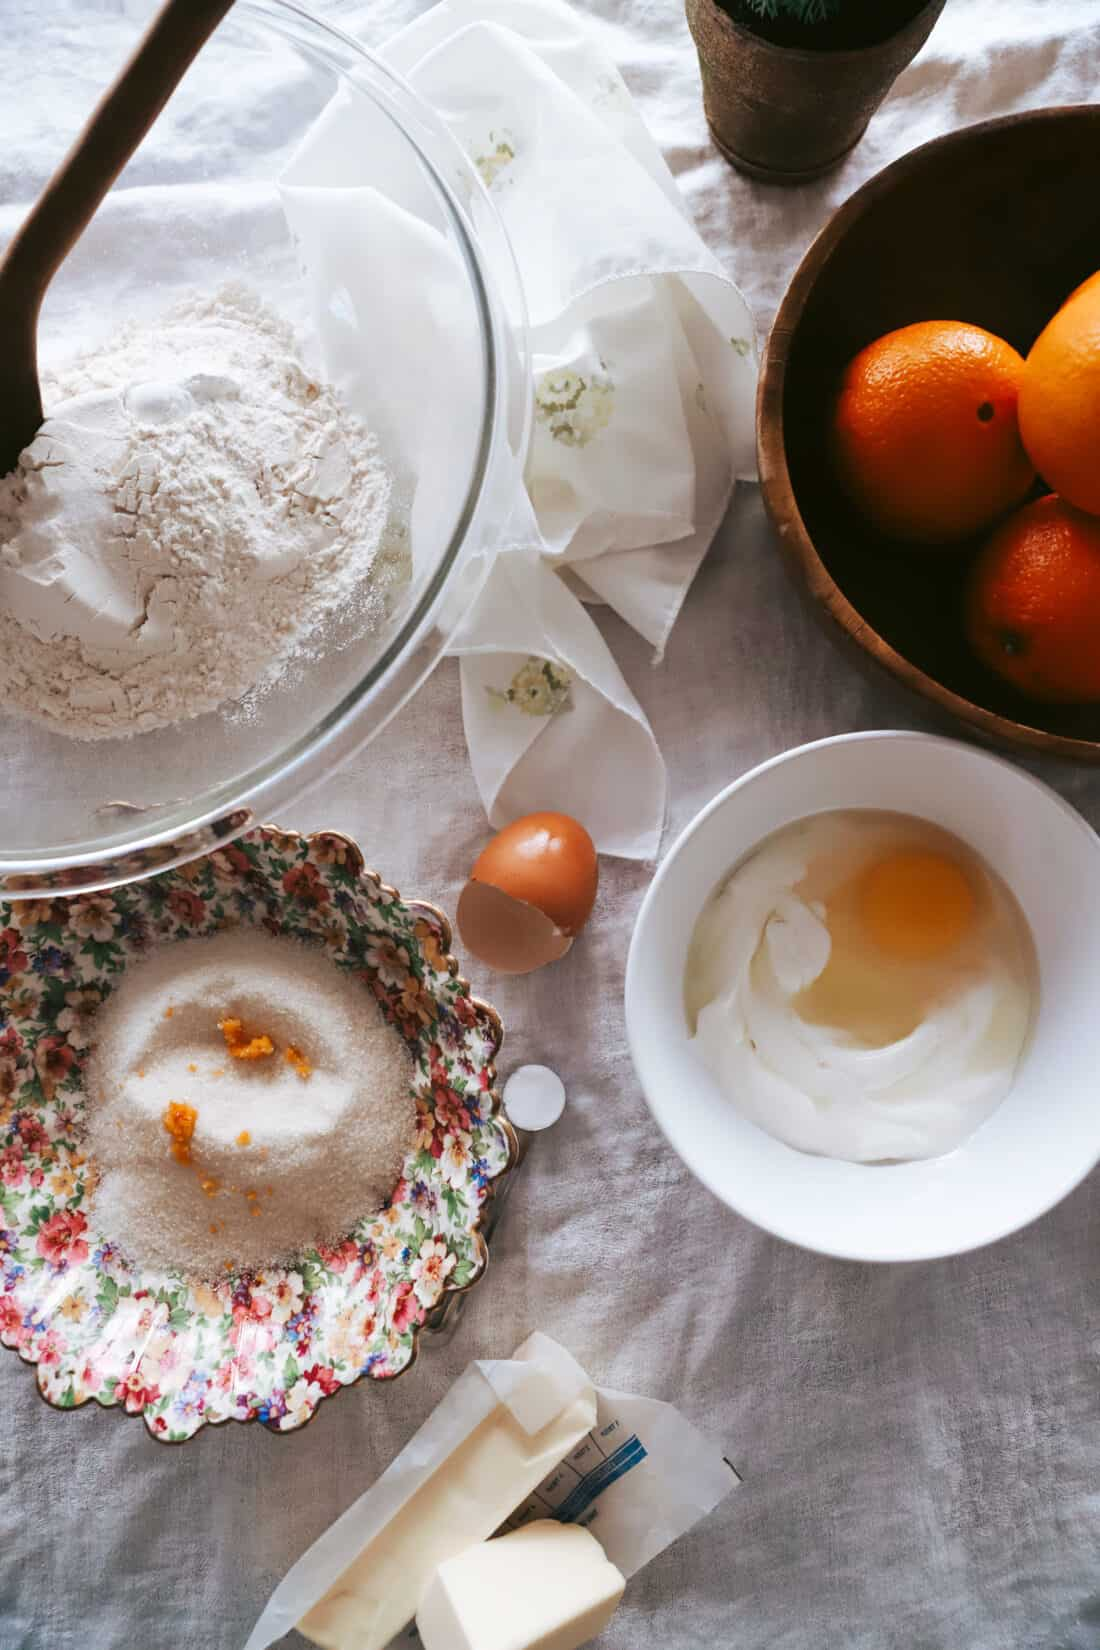 ingredients for orange scones in bowls on a table with a white table cloth